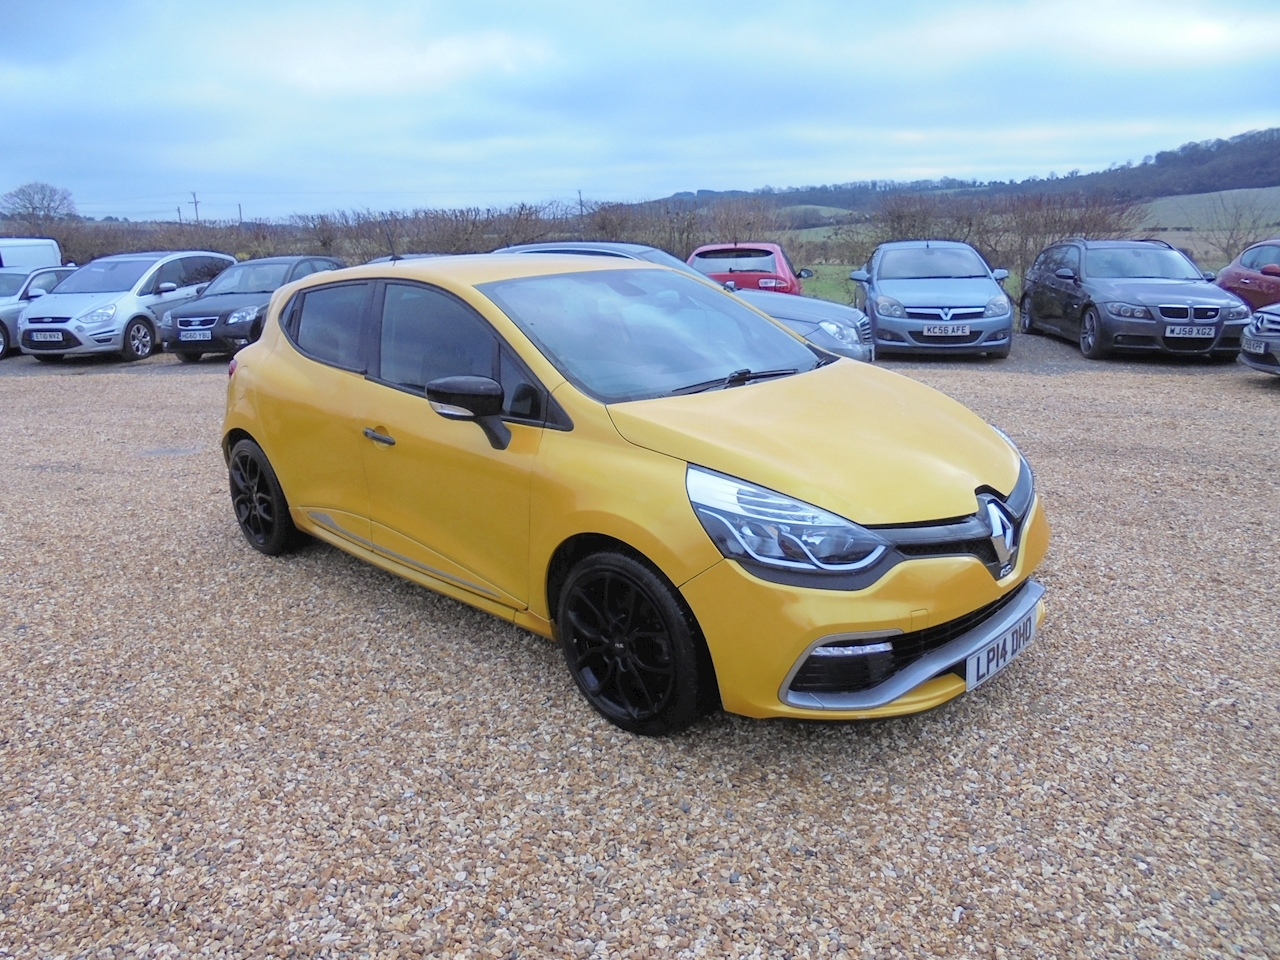 Renault Clio Renaultsport Lux Hatchback 1.6 Automatic Petrol